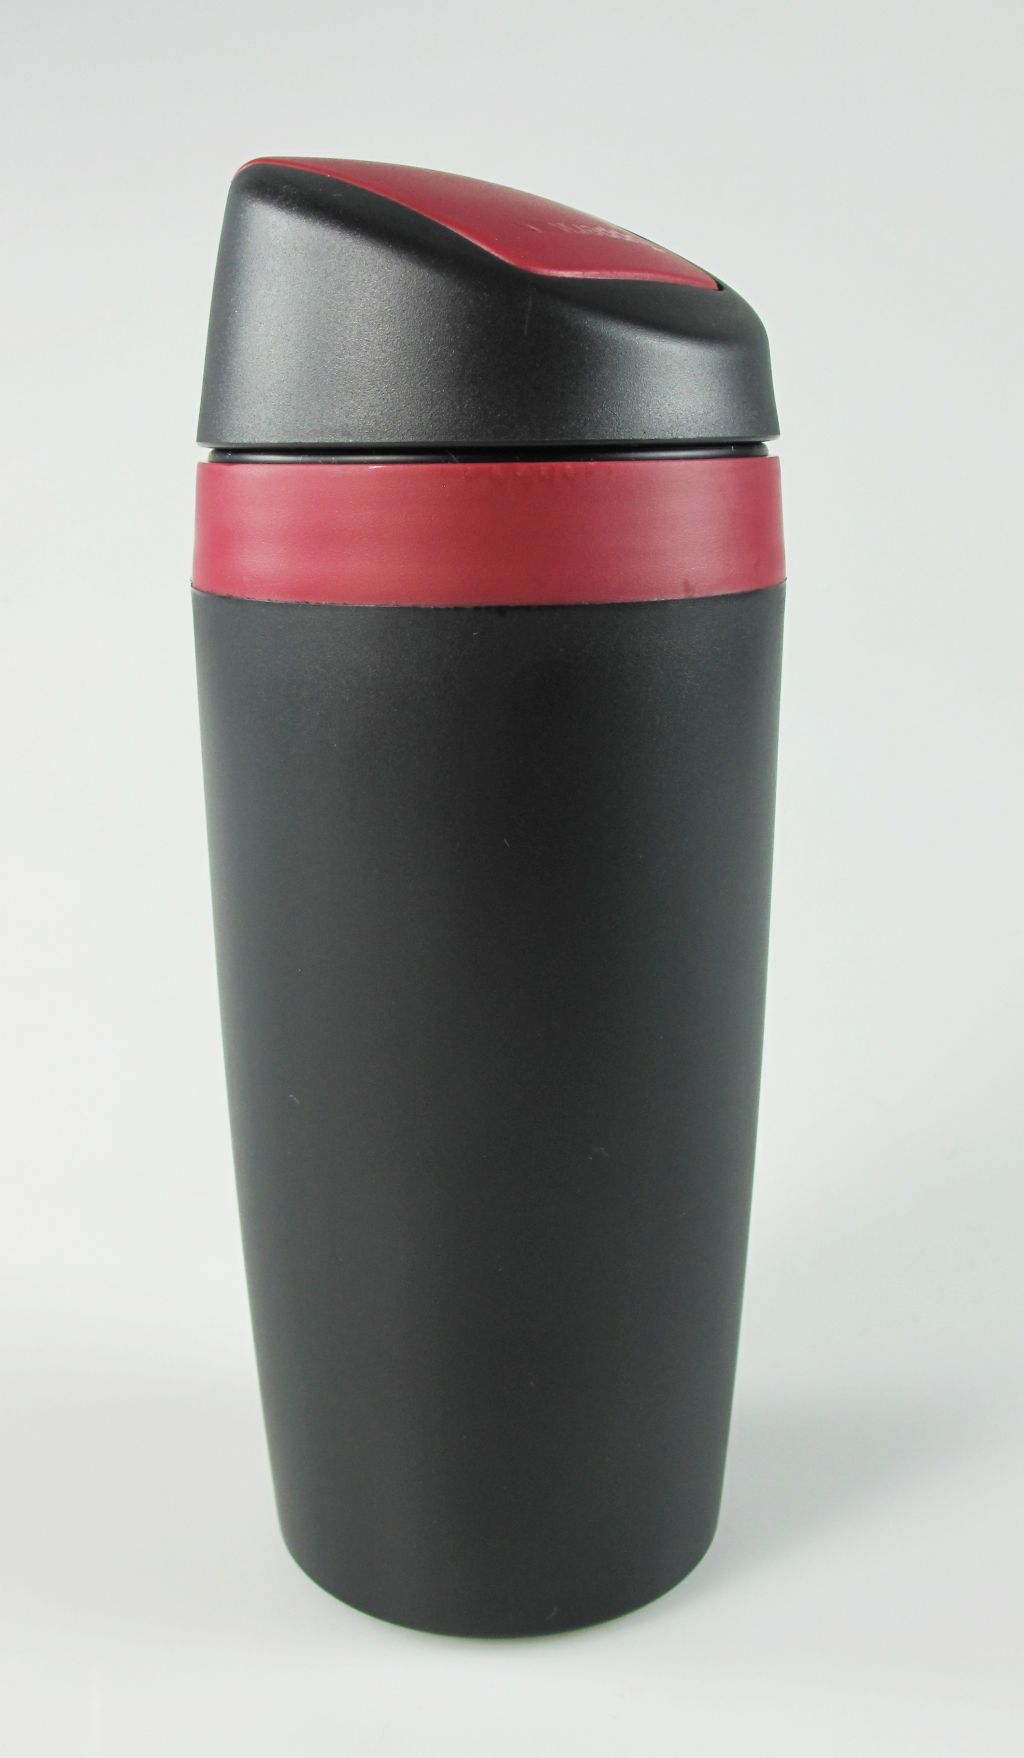 tupperware kaffee to go and kaffeebecher thermobecher coffee cafe schwarz rot ebay. Black Bedroom Furniture Sets. Home Design Ideas